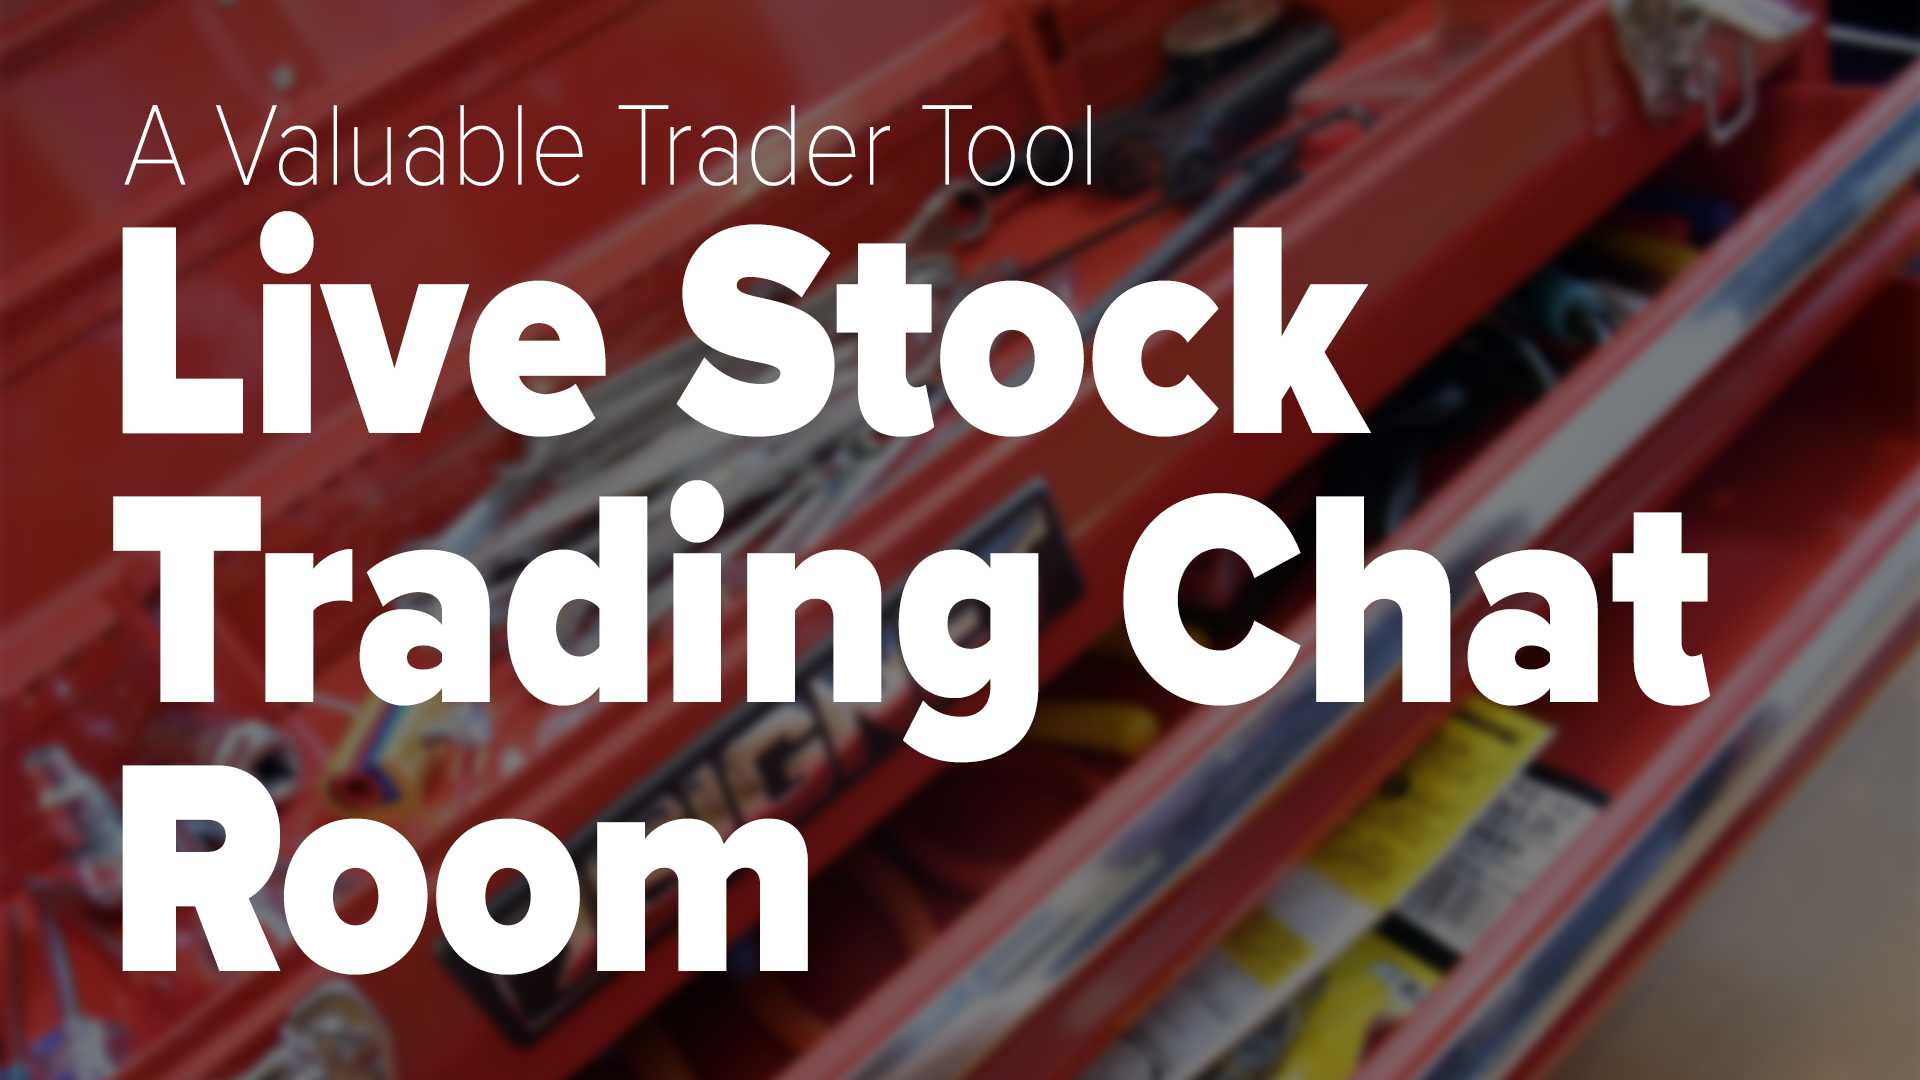 a valuable trader tool live stock trading chat room